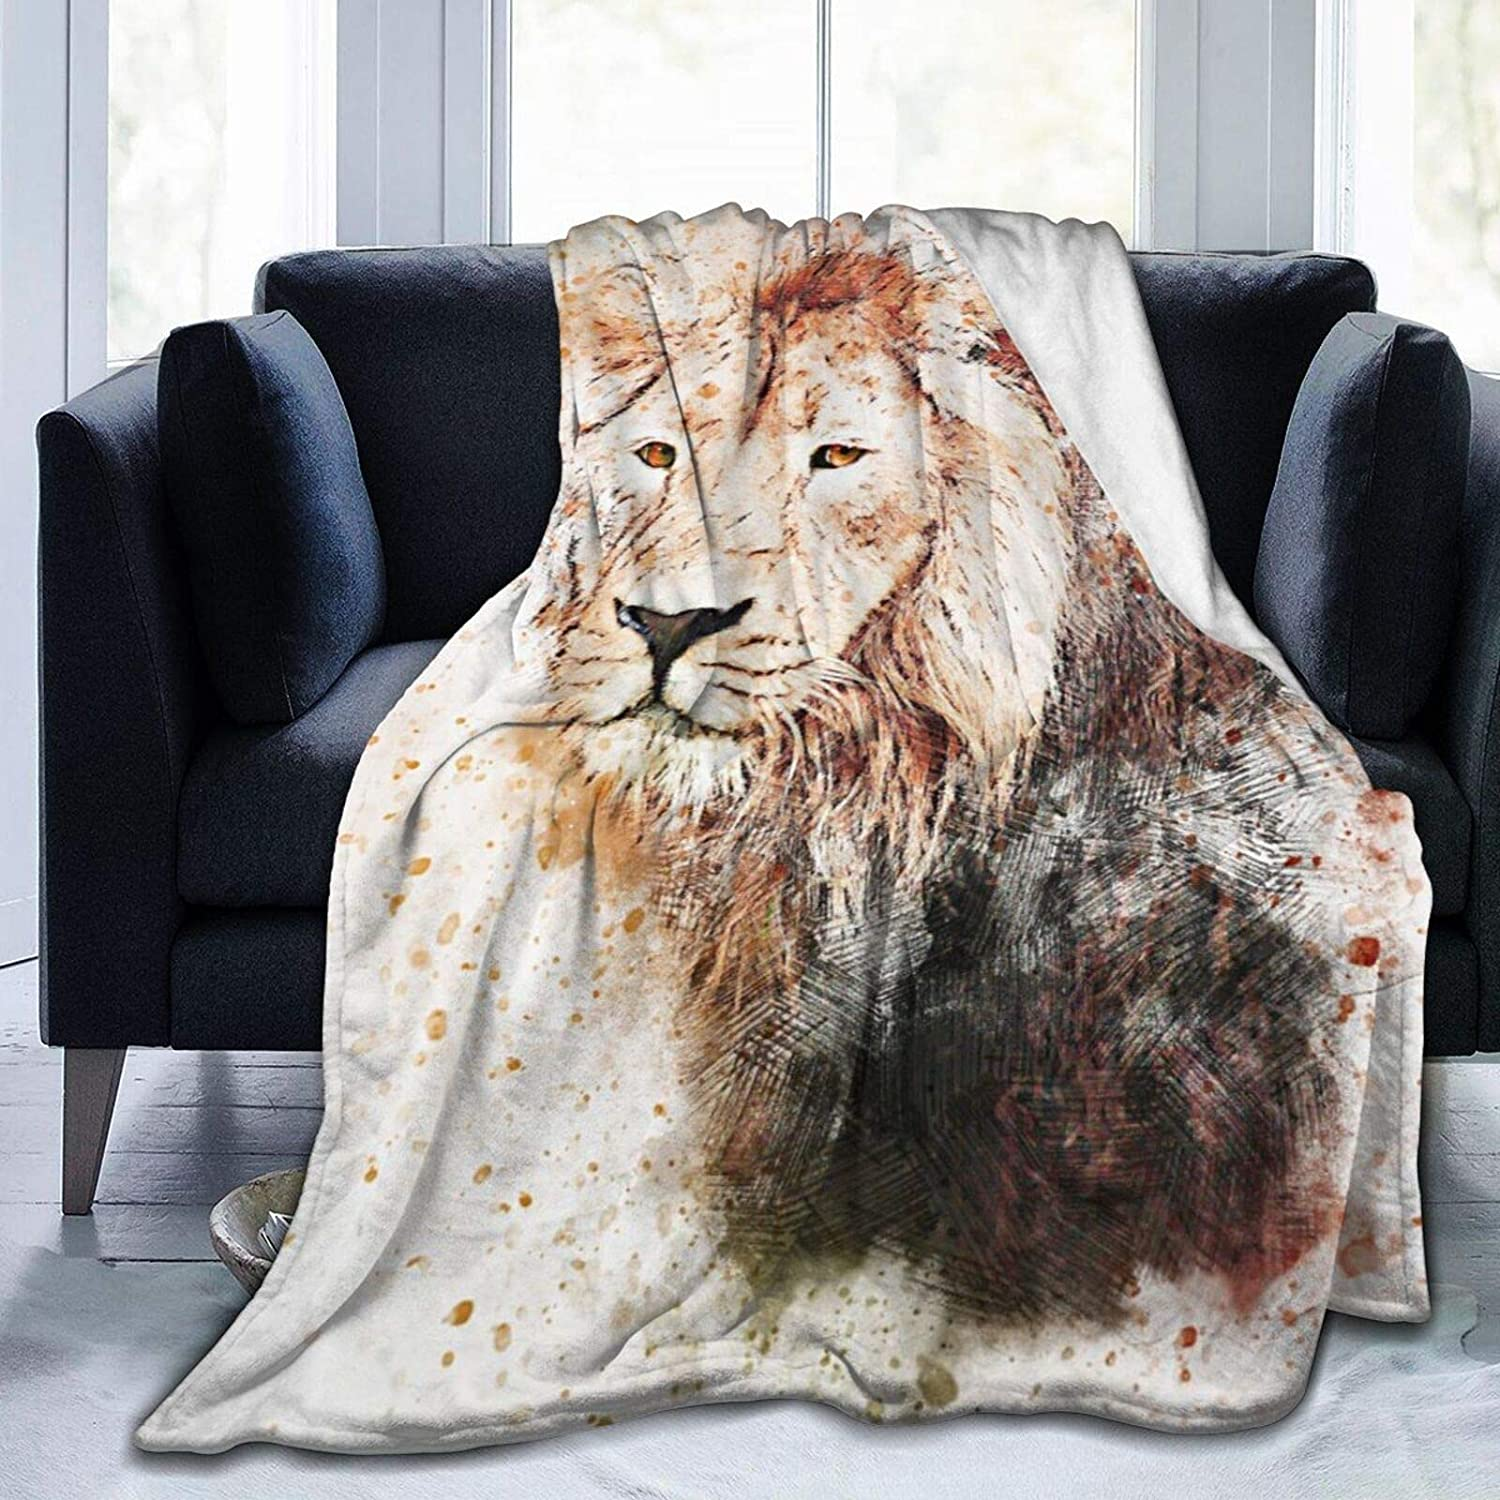 Lions Animals Art Abstract Watercolor Splatter 100% quality warranty! Classic Decorative Paint